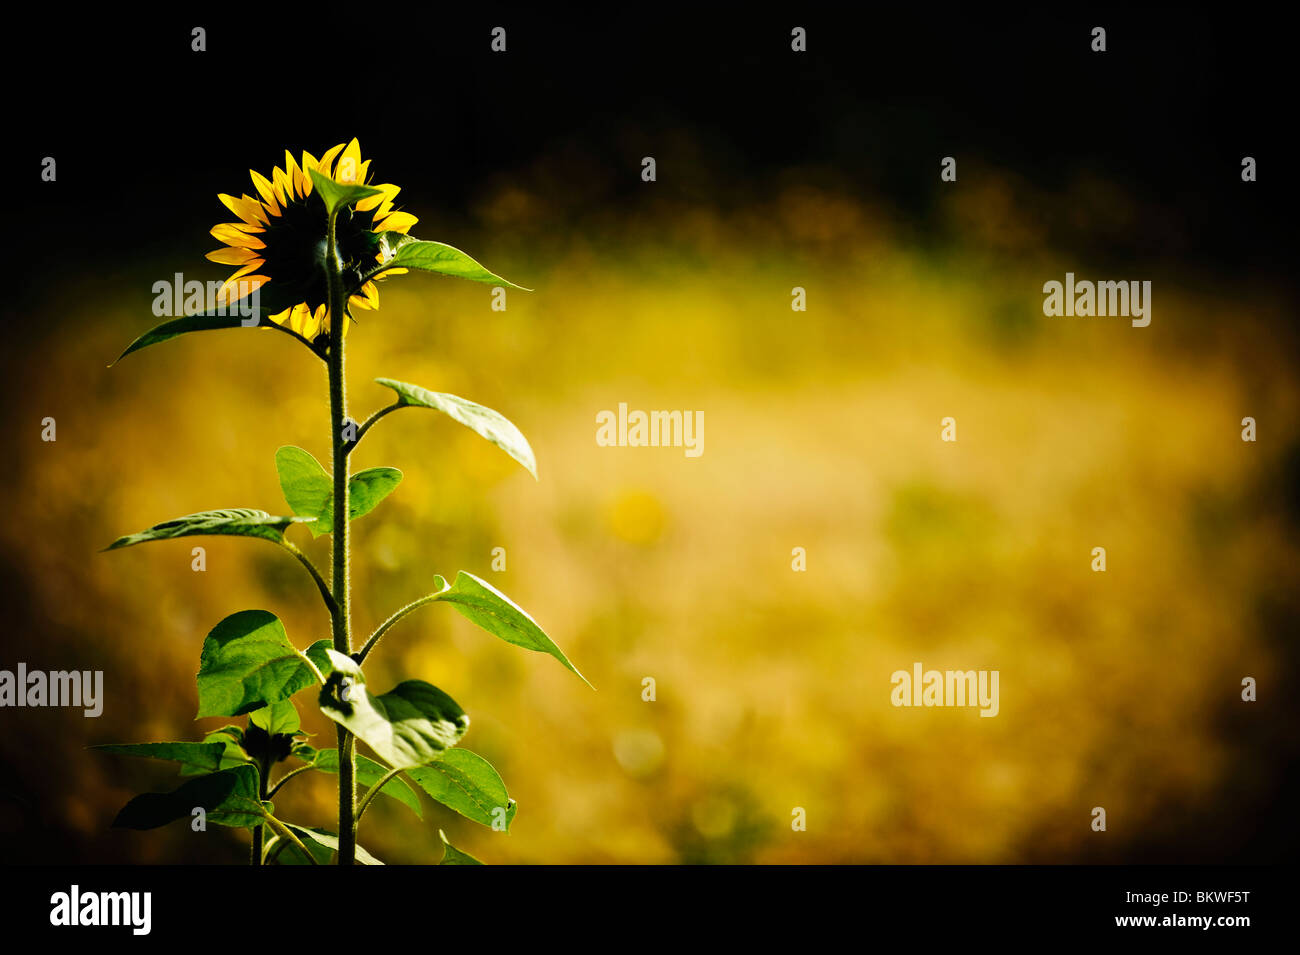 Lonely sunflower growing in field - Stock Image